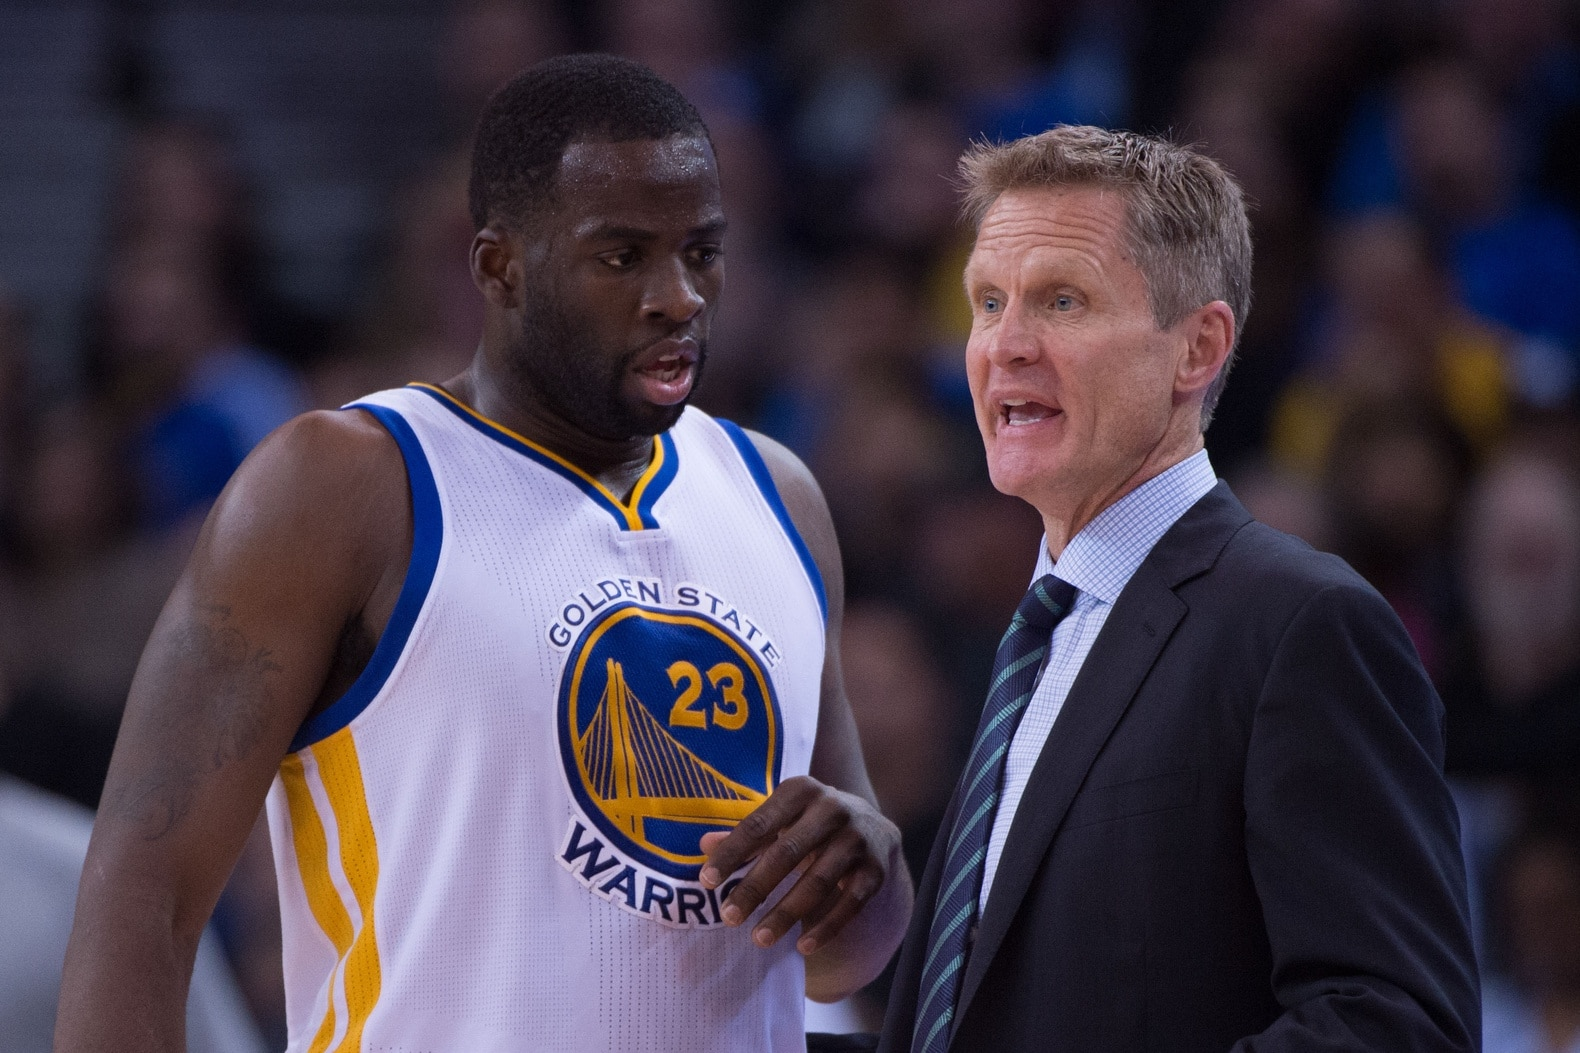 Steve Kerr and Draymond Green of the Golden State Warriors